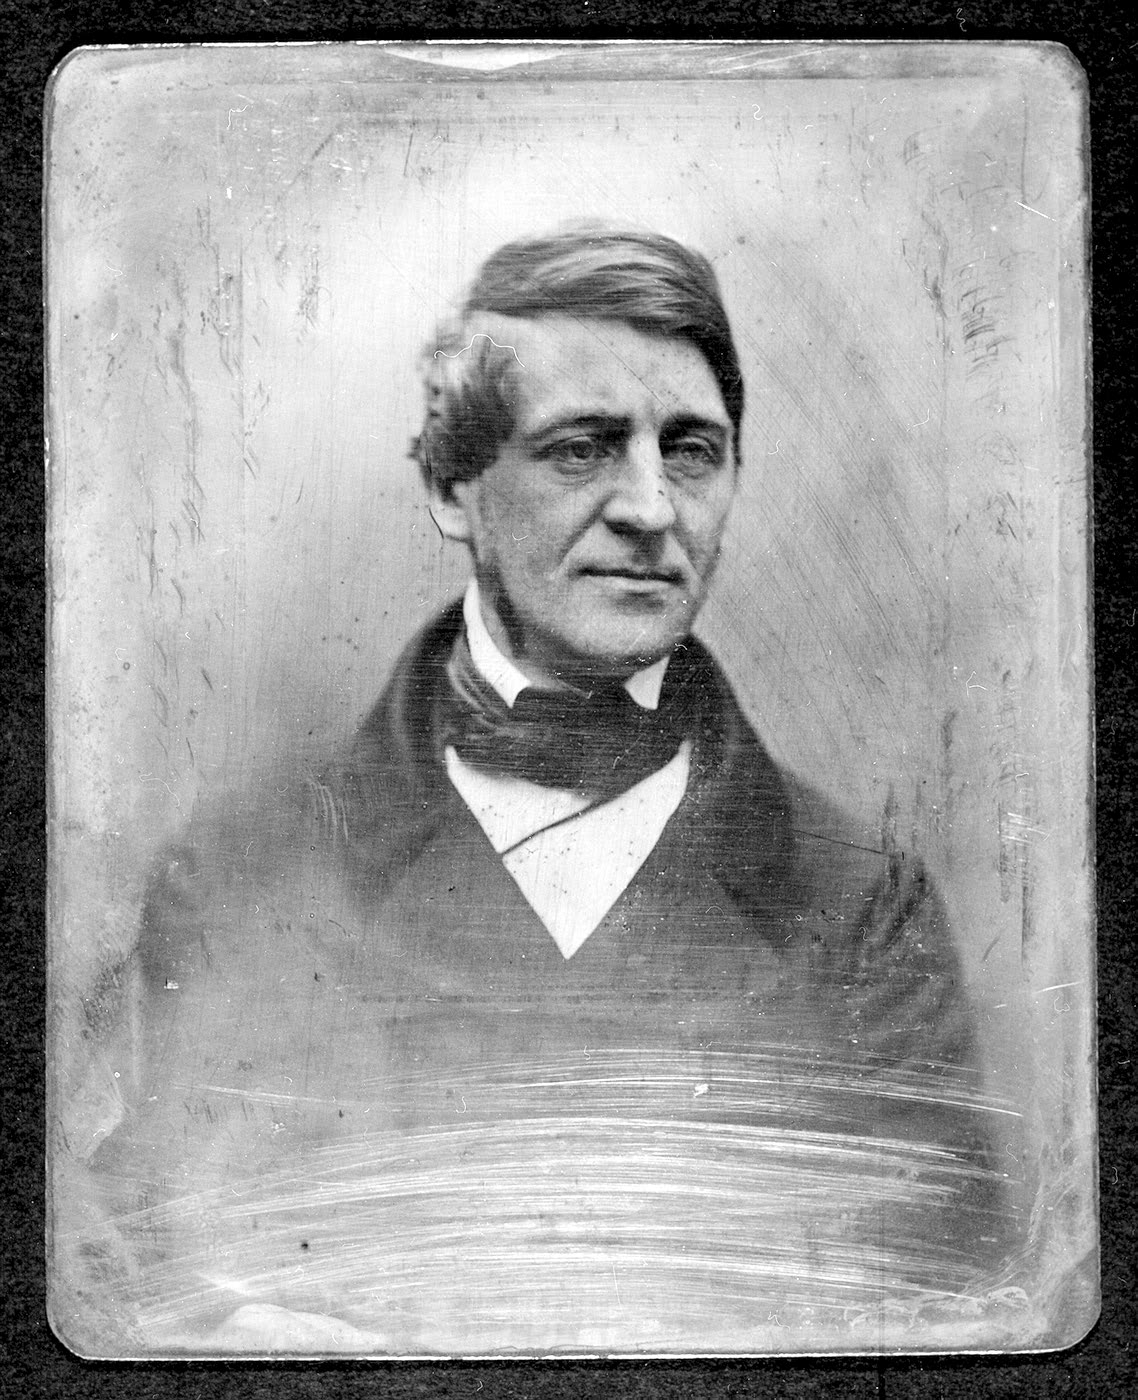 contributions of ralph waldo emerson in the history of american literature Ralph waldo emerson, its was the ongoing effect of transcendentalism in literature and first generation gaps in american history emerson.